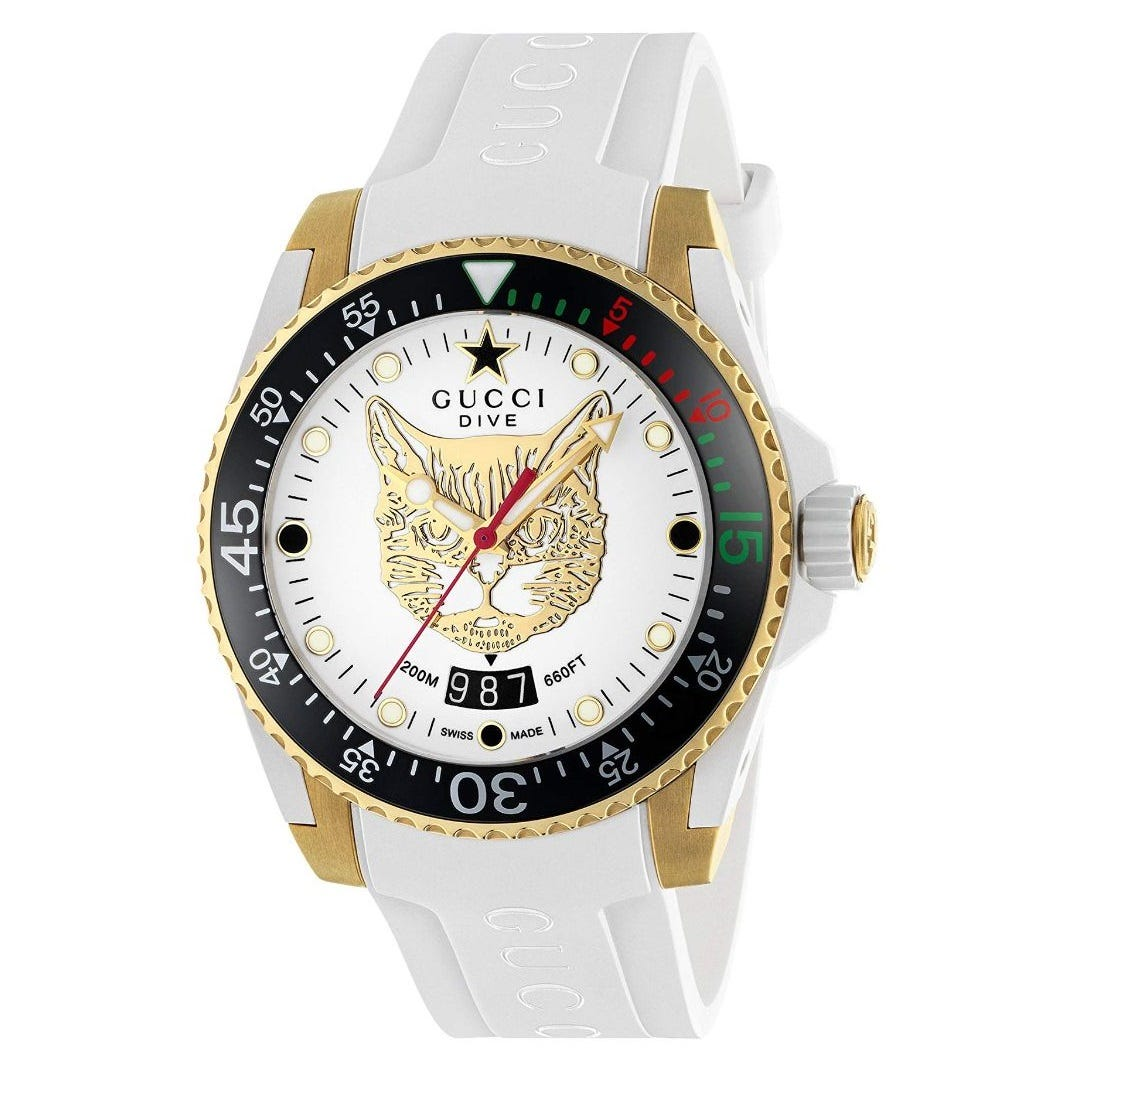 Gucci Dive White Dial 40mm Unisex Watch